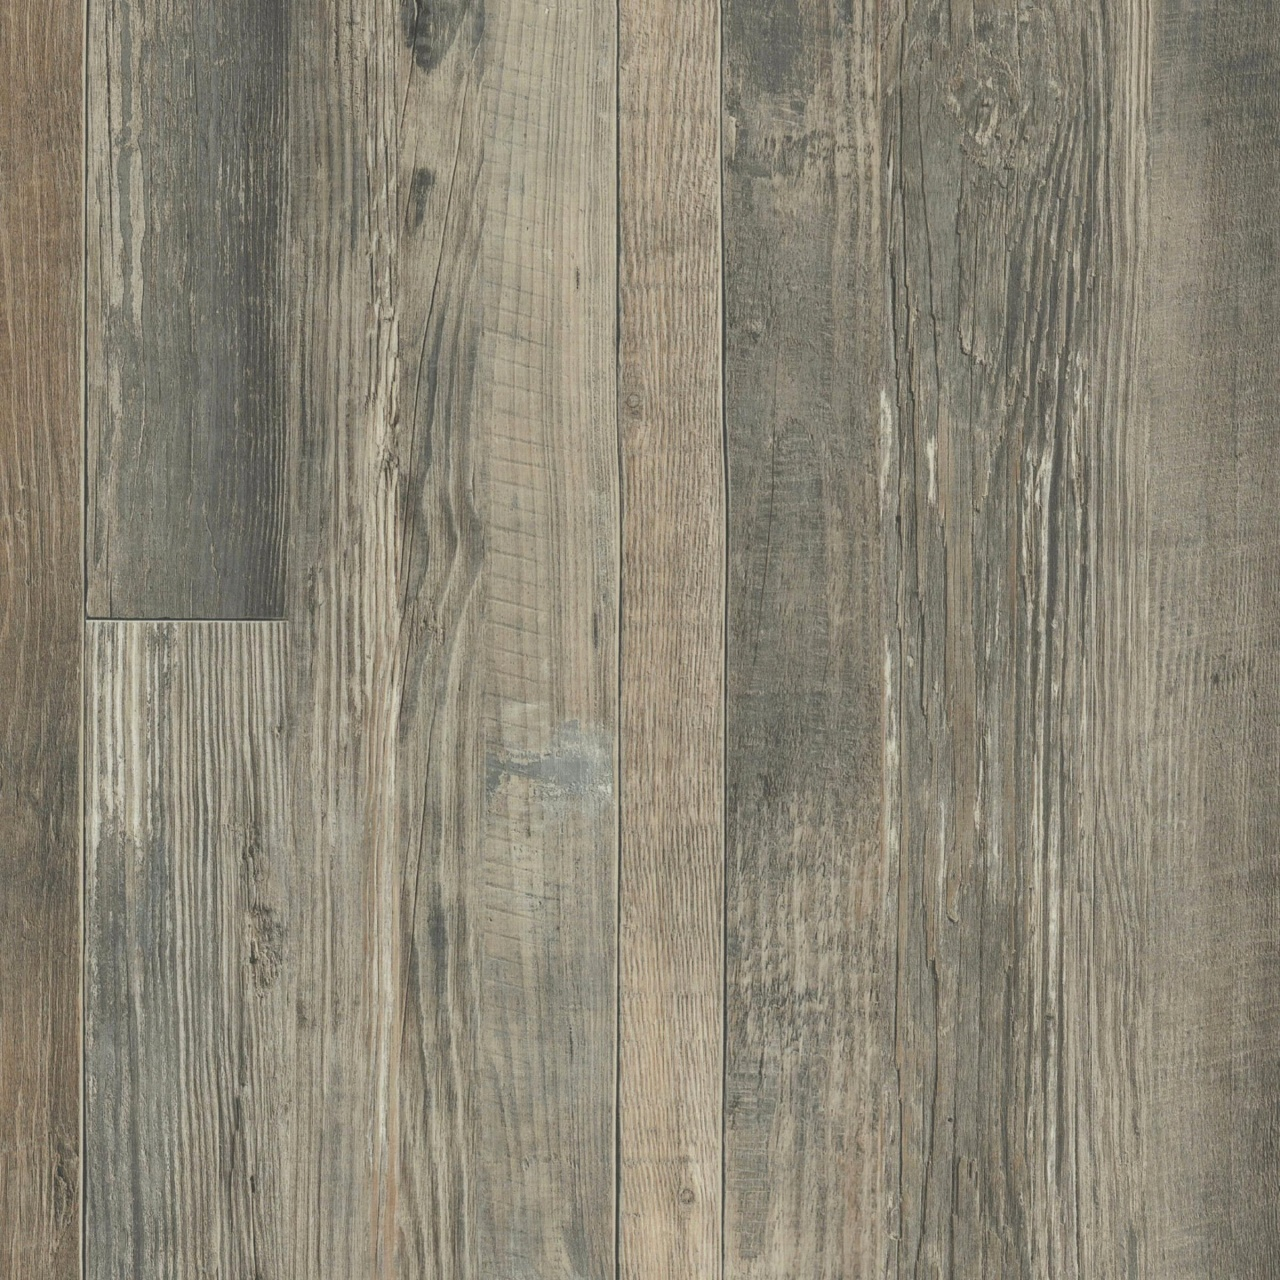 Loose Lay Vinyl Flooring Lowes 42